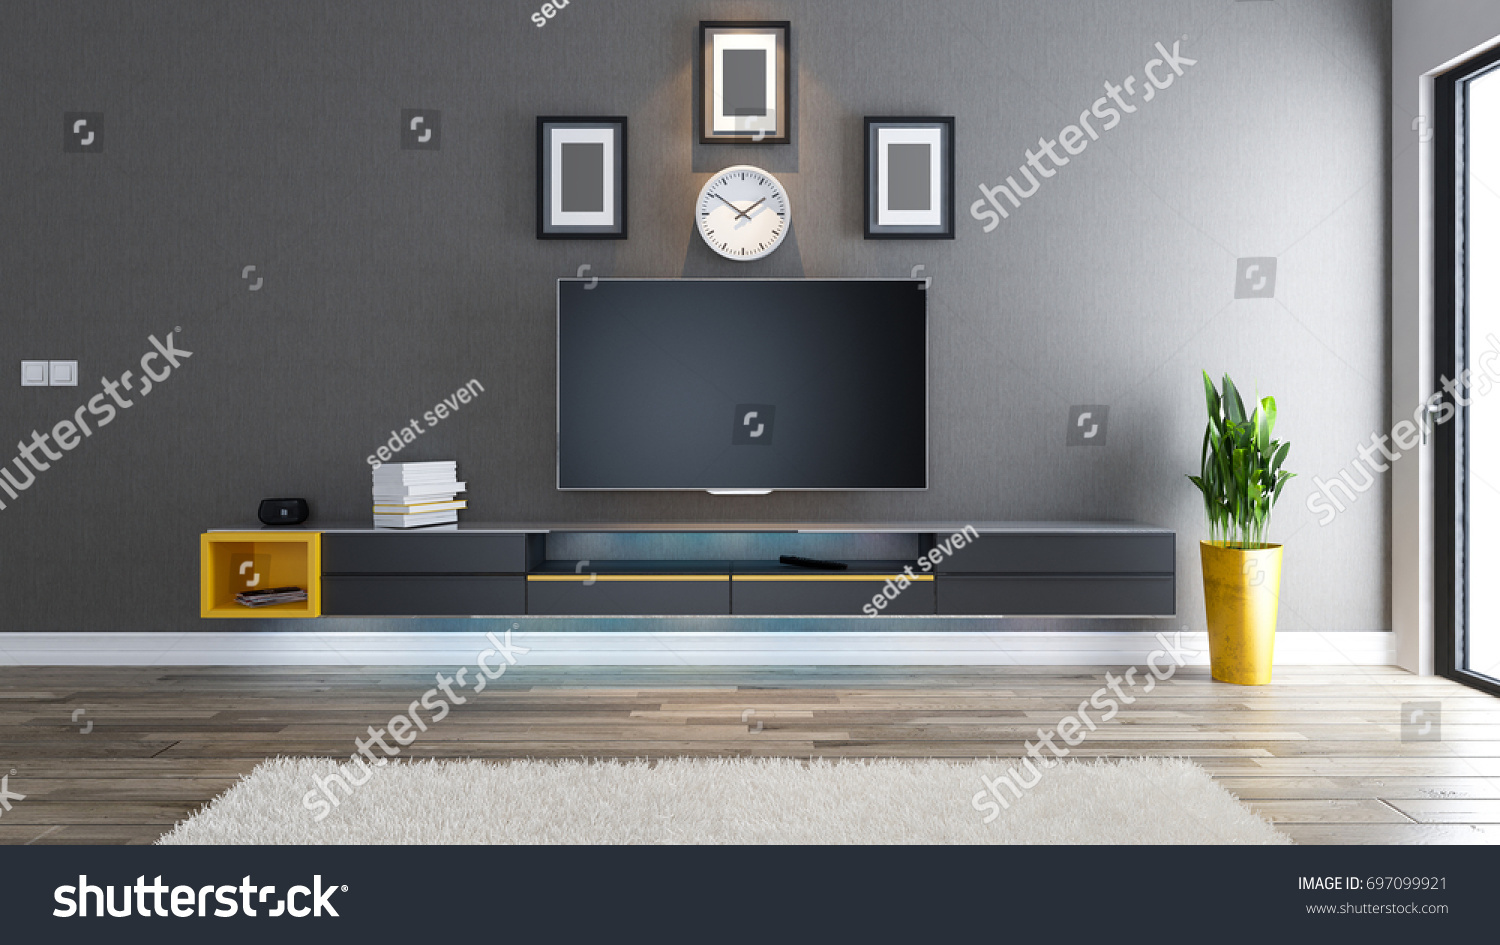 Tv Room Salon Or Living Room With Covered Wallpaper Wall Plant And Black Tv  Stand Design Part 51